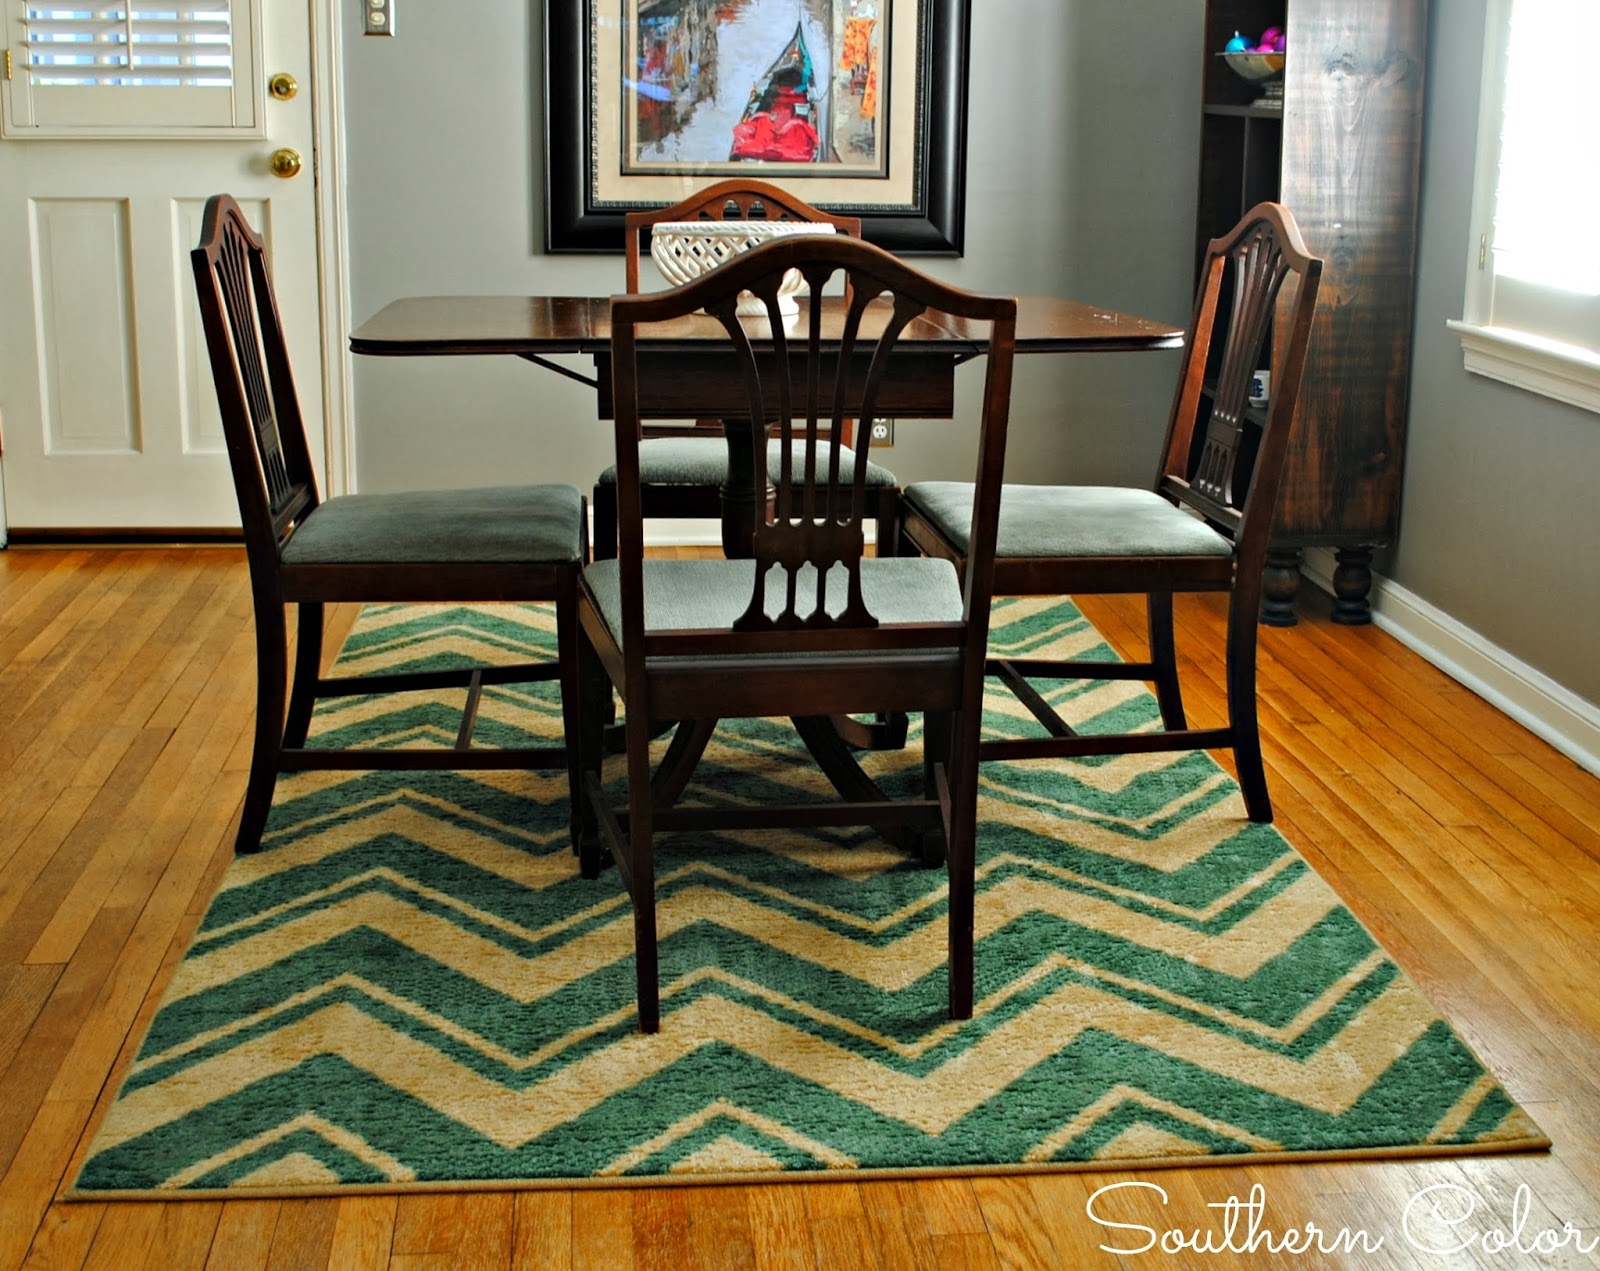 southern color mohawk rug review and giveaway